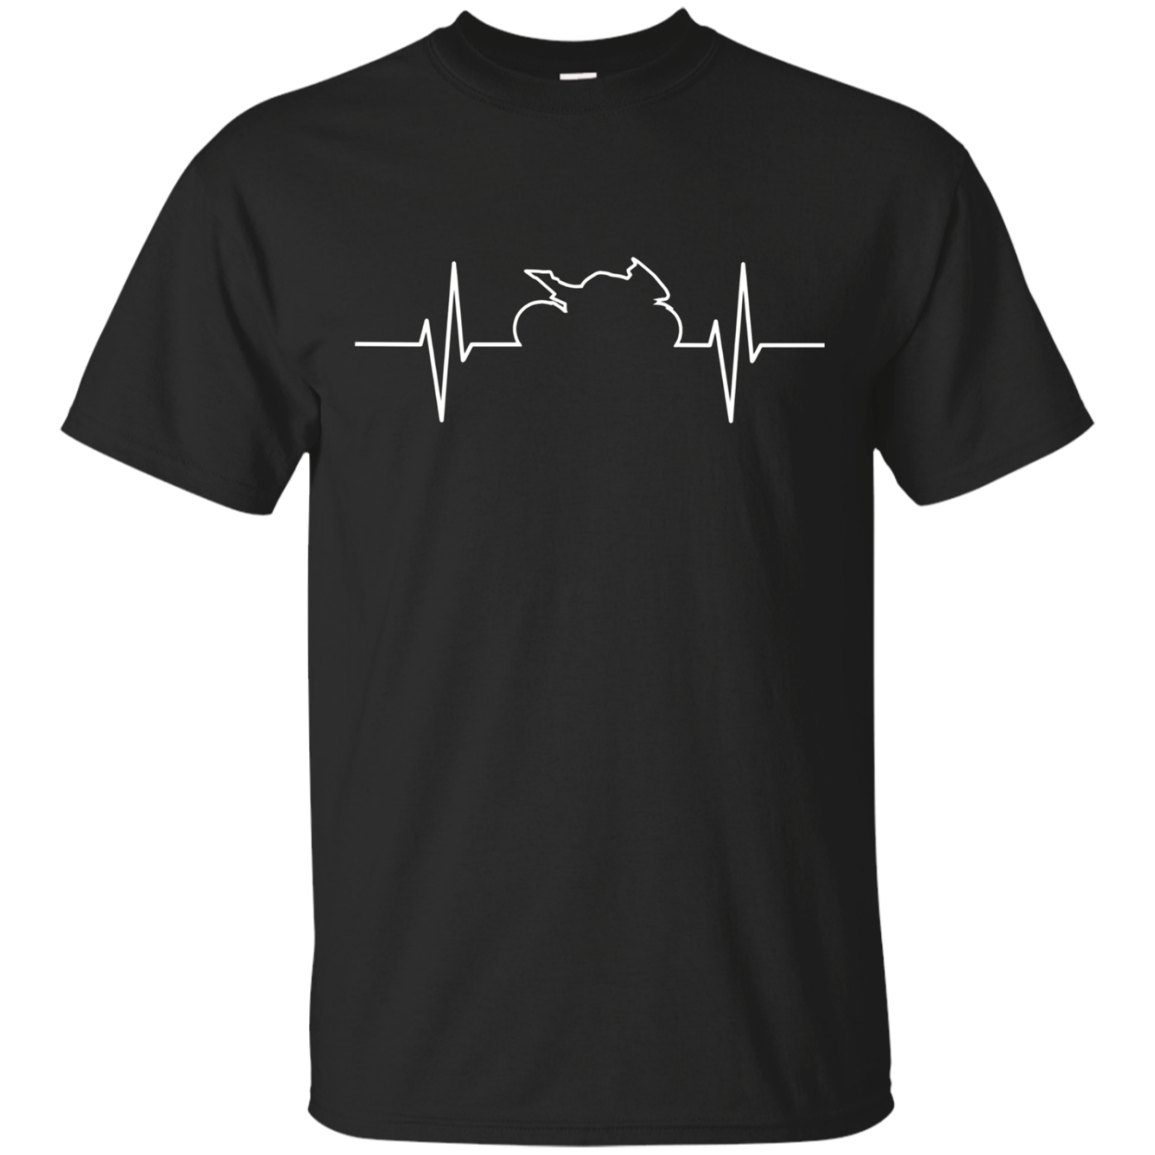 Sport Bike Motorcycle Heartbeat T Shirt For Riders